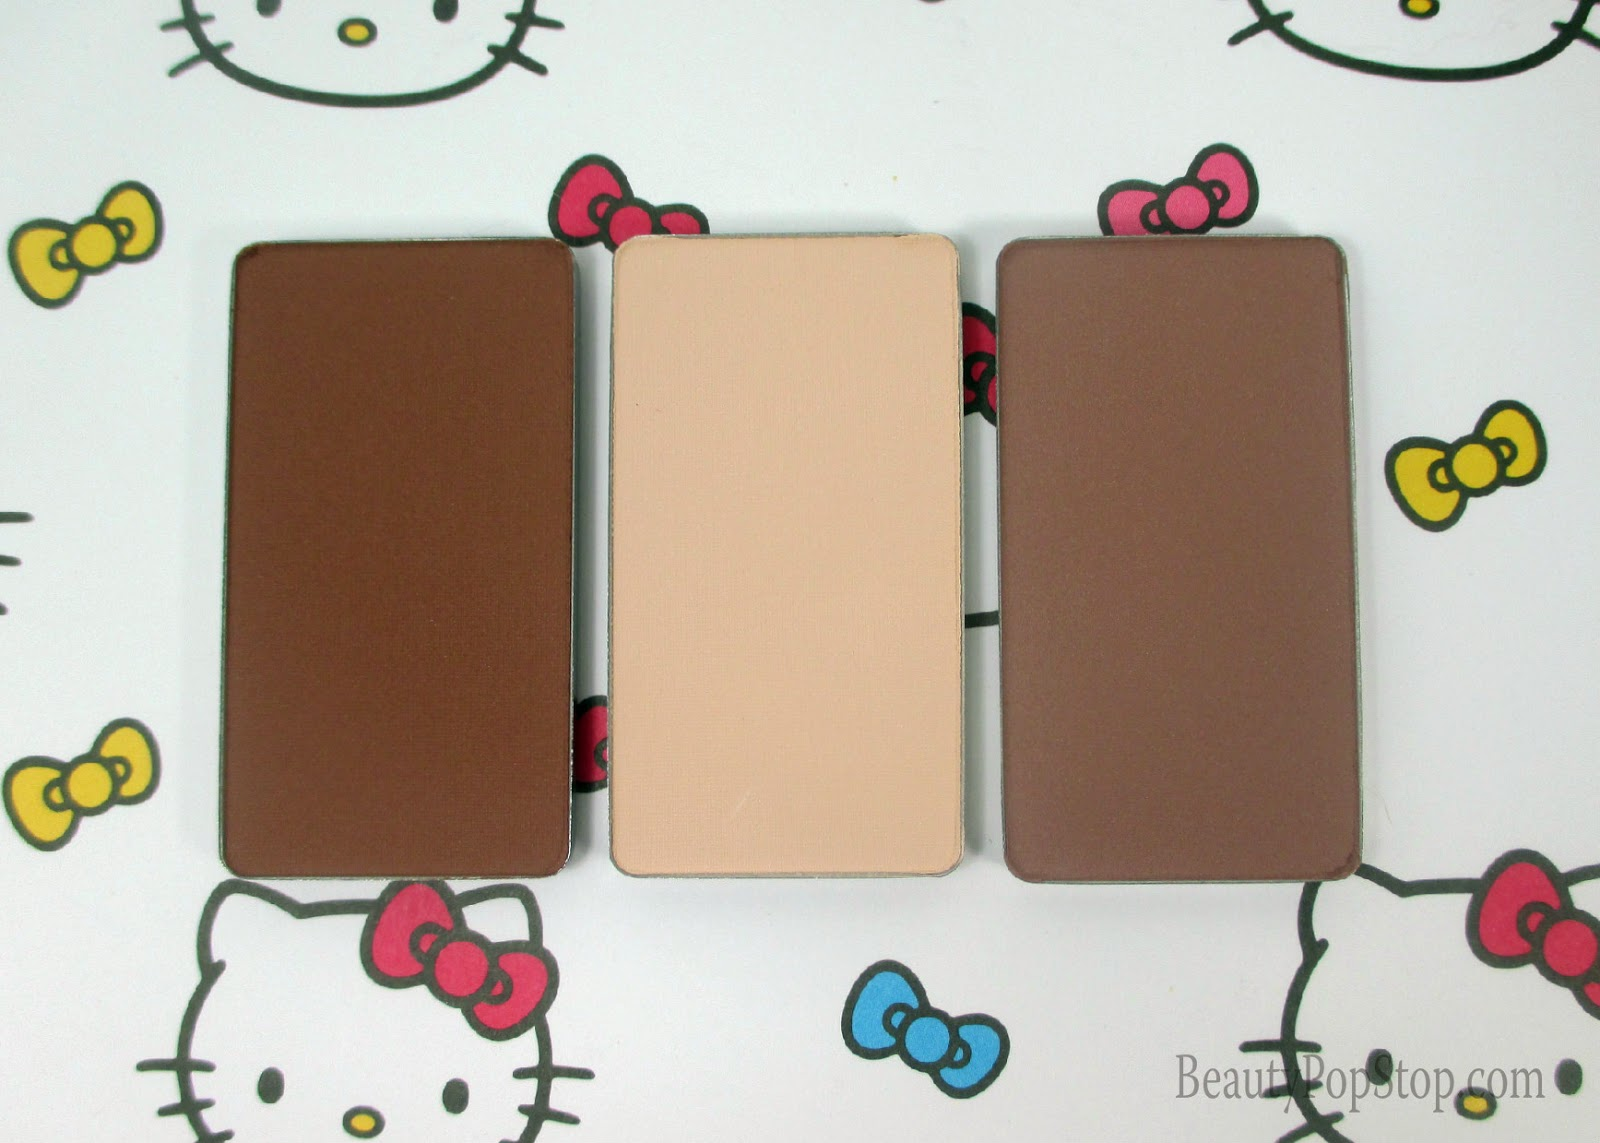 inglot freedom system hd scultping powder review and swatches